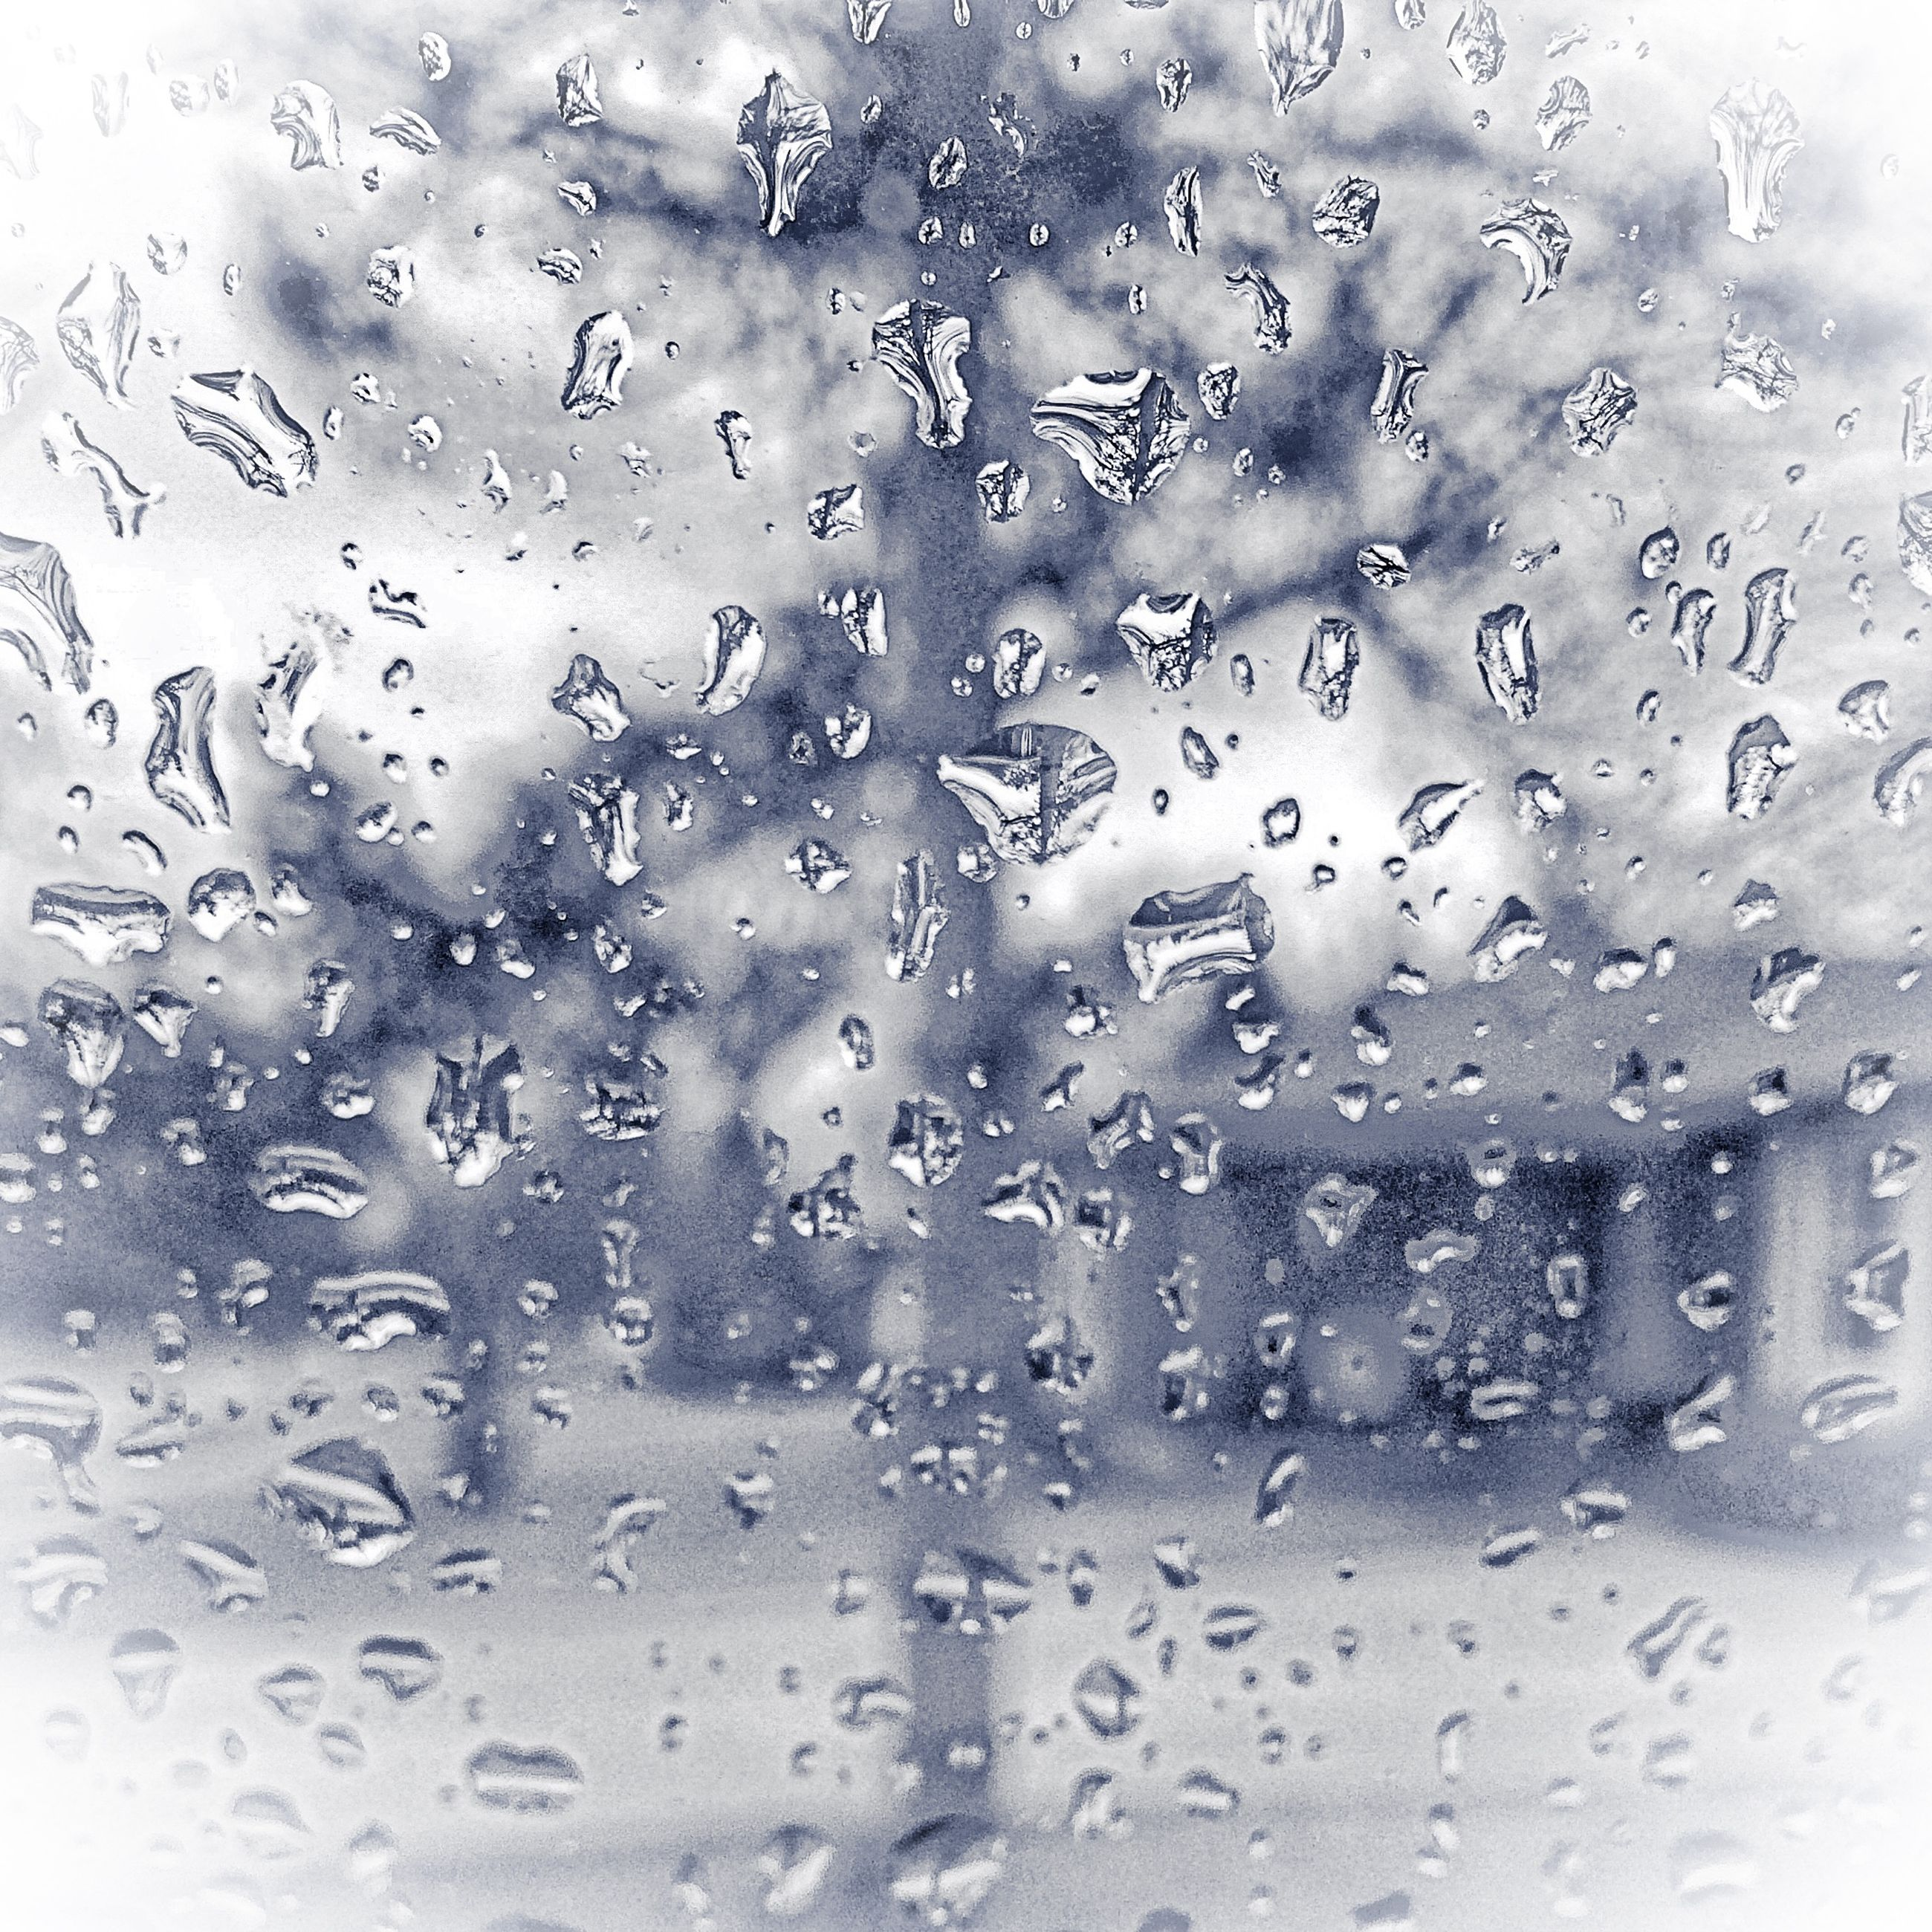 drop, window, wet, indoors, transparent, glass - material, water, rain, full frame, backgrounds, raindrop, weather, season, glass, close-up, focus on foreground, droplet, no people, water drop, sky